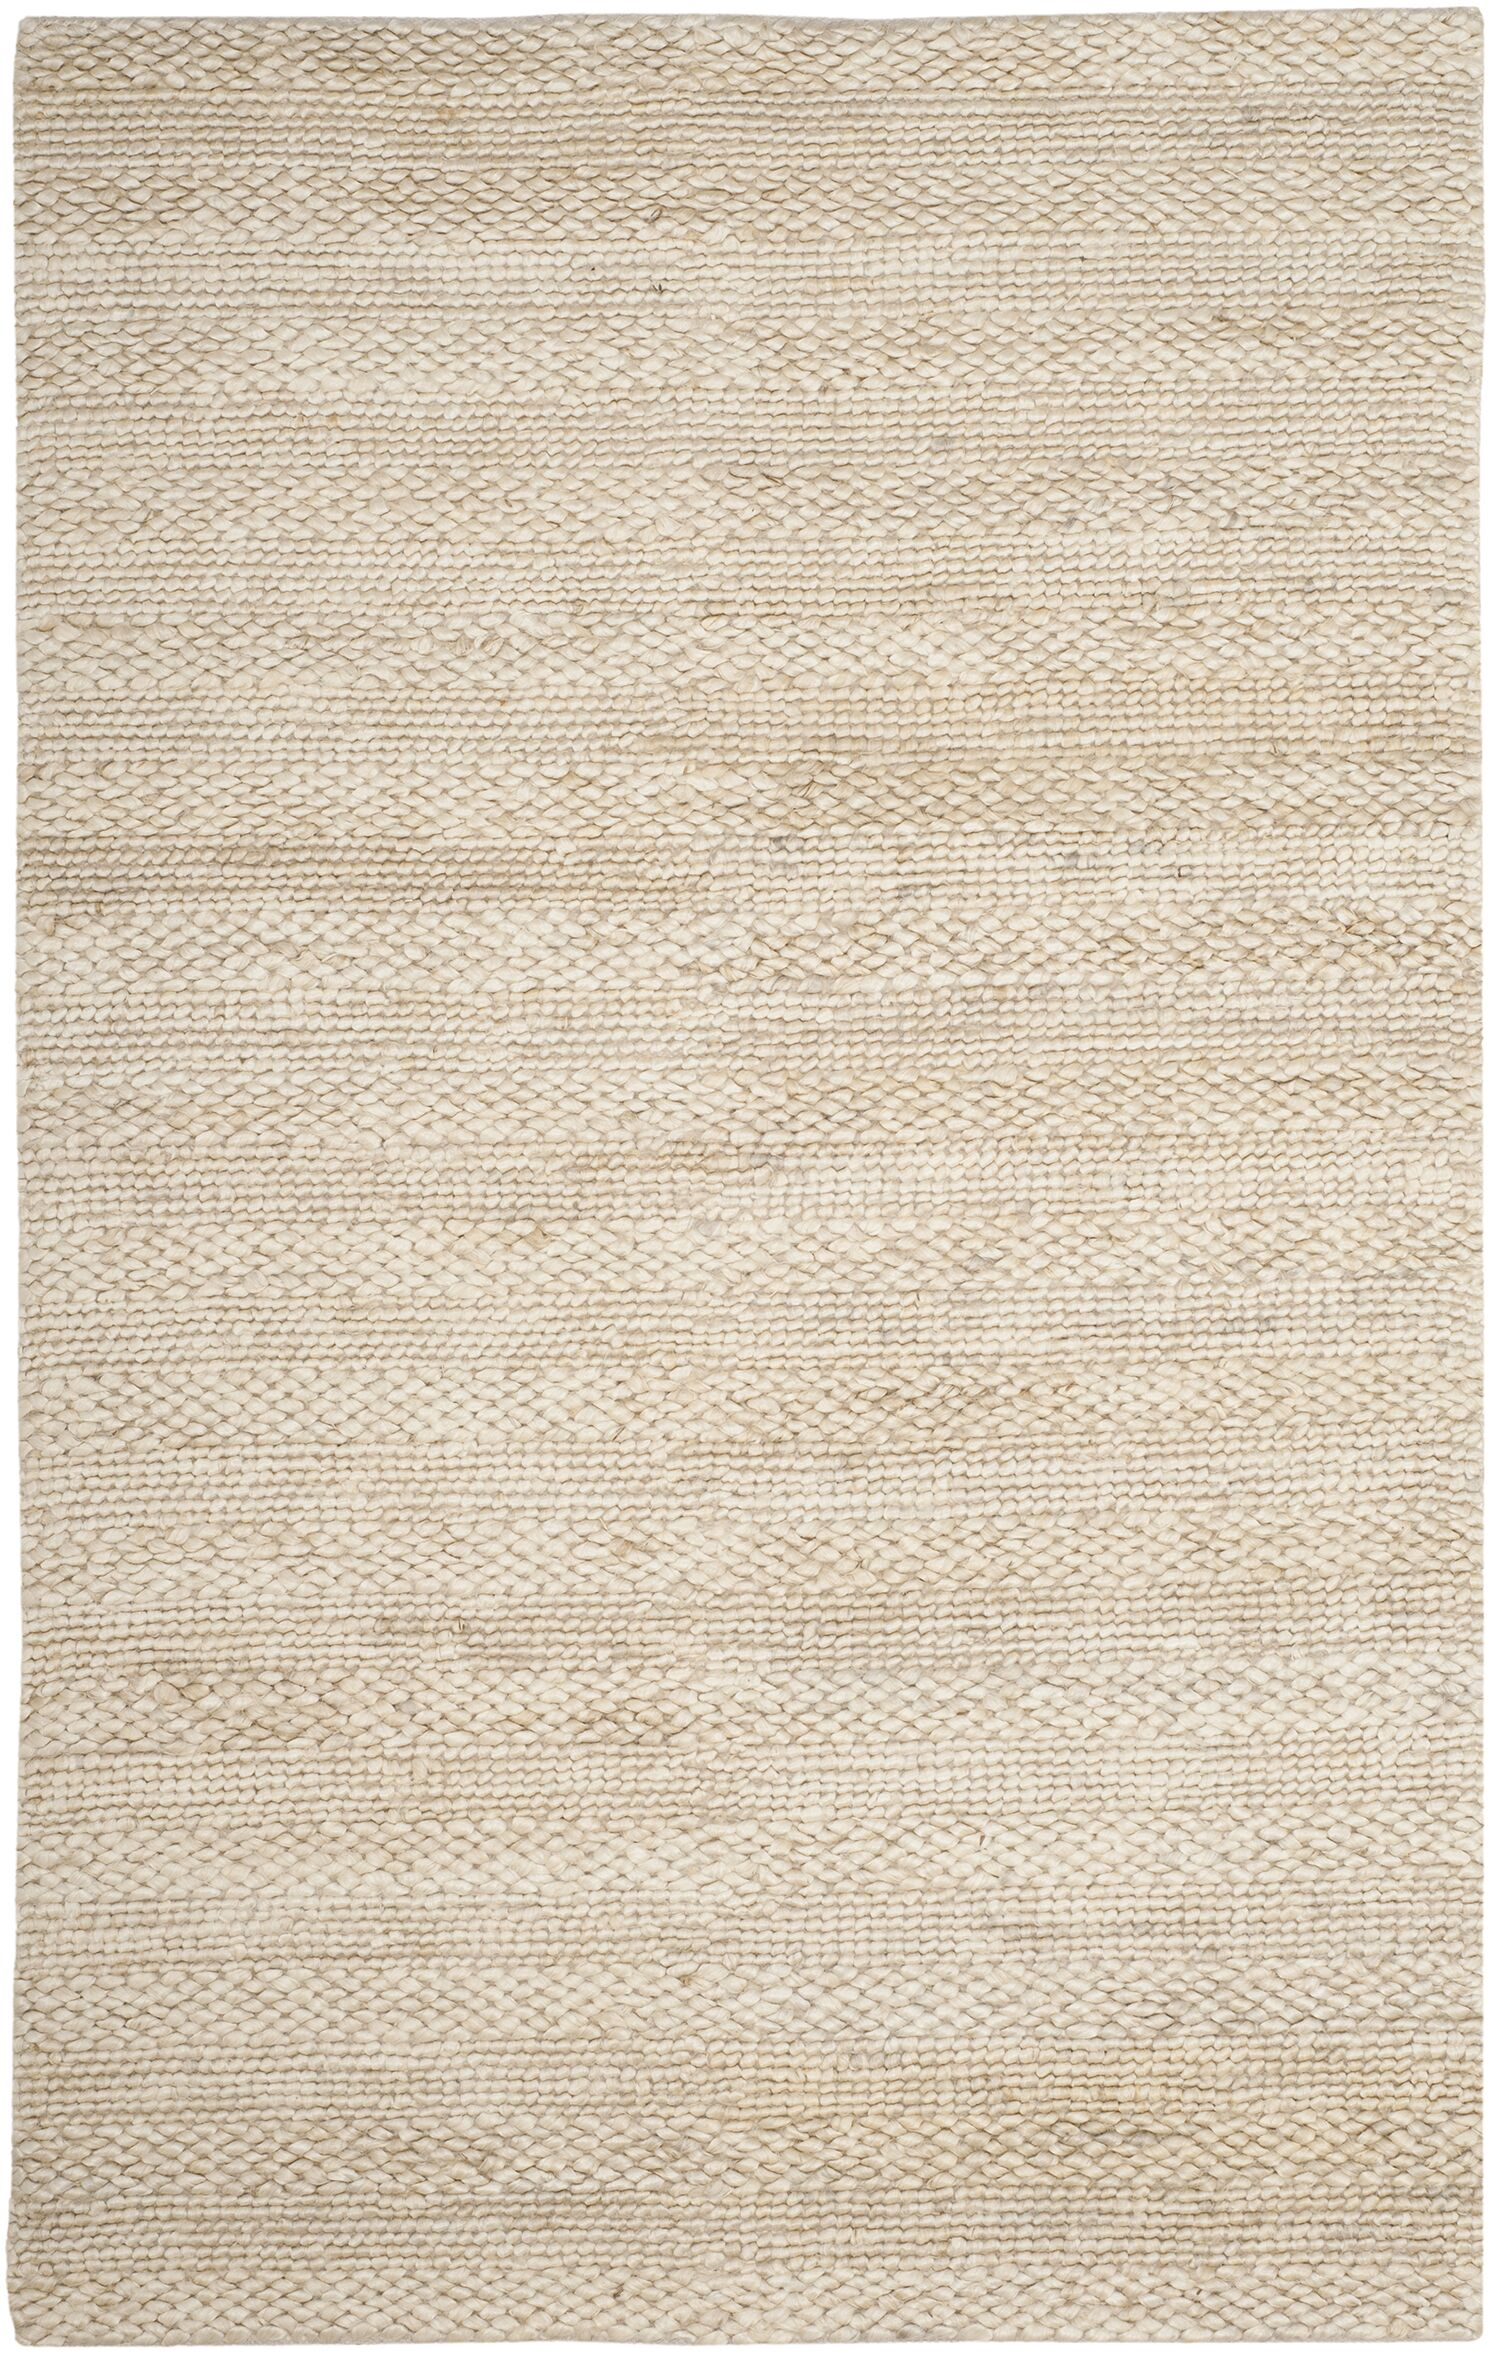 Eco-Smart Hand-Woven Bleach Area Rug Rug Size: Rectangle 5' x 8'